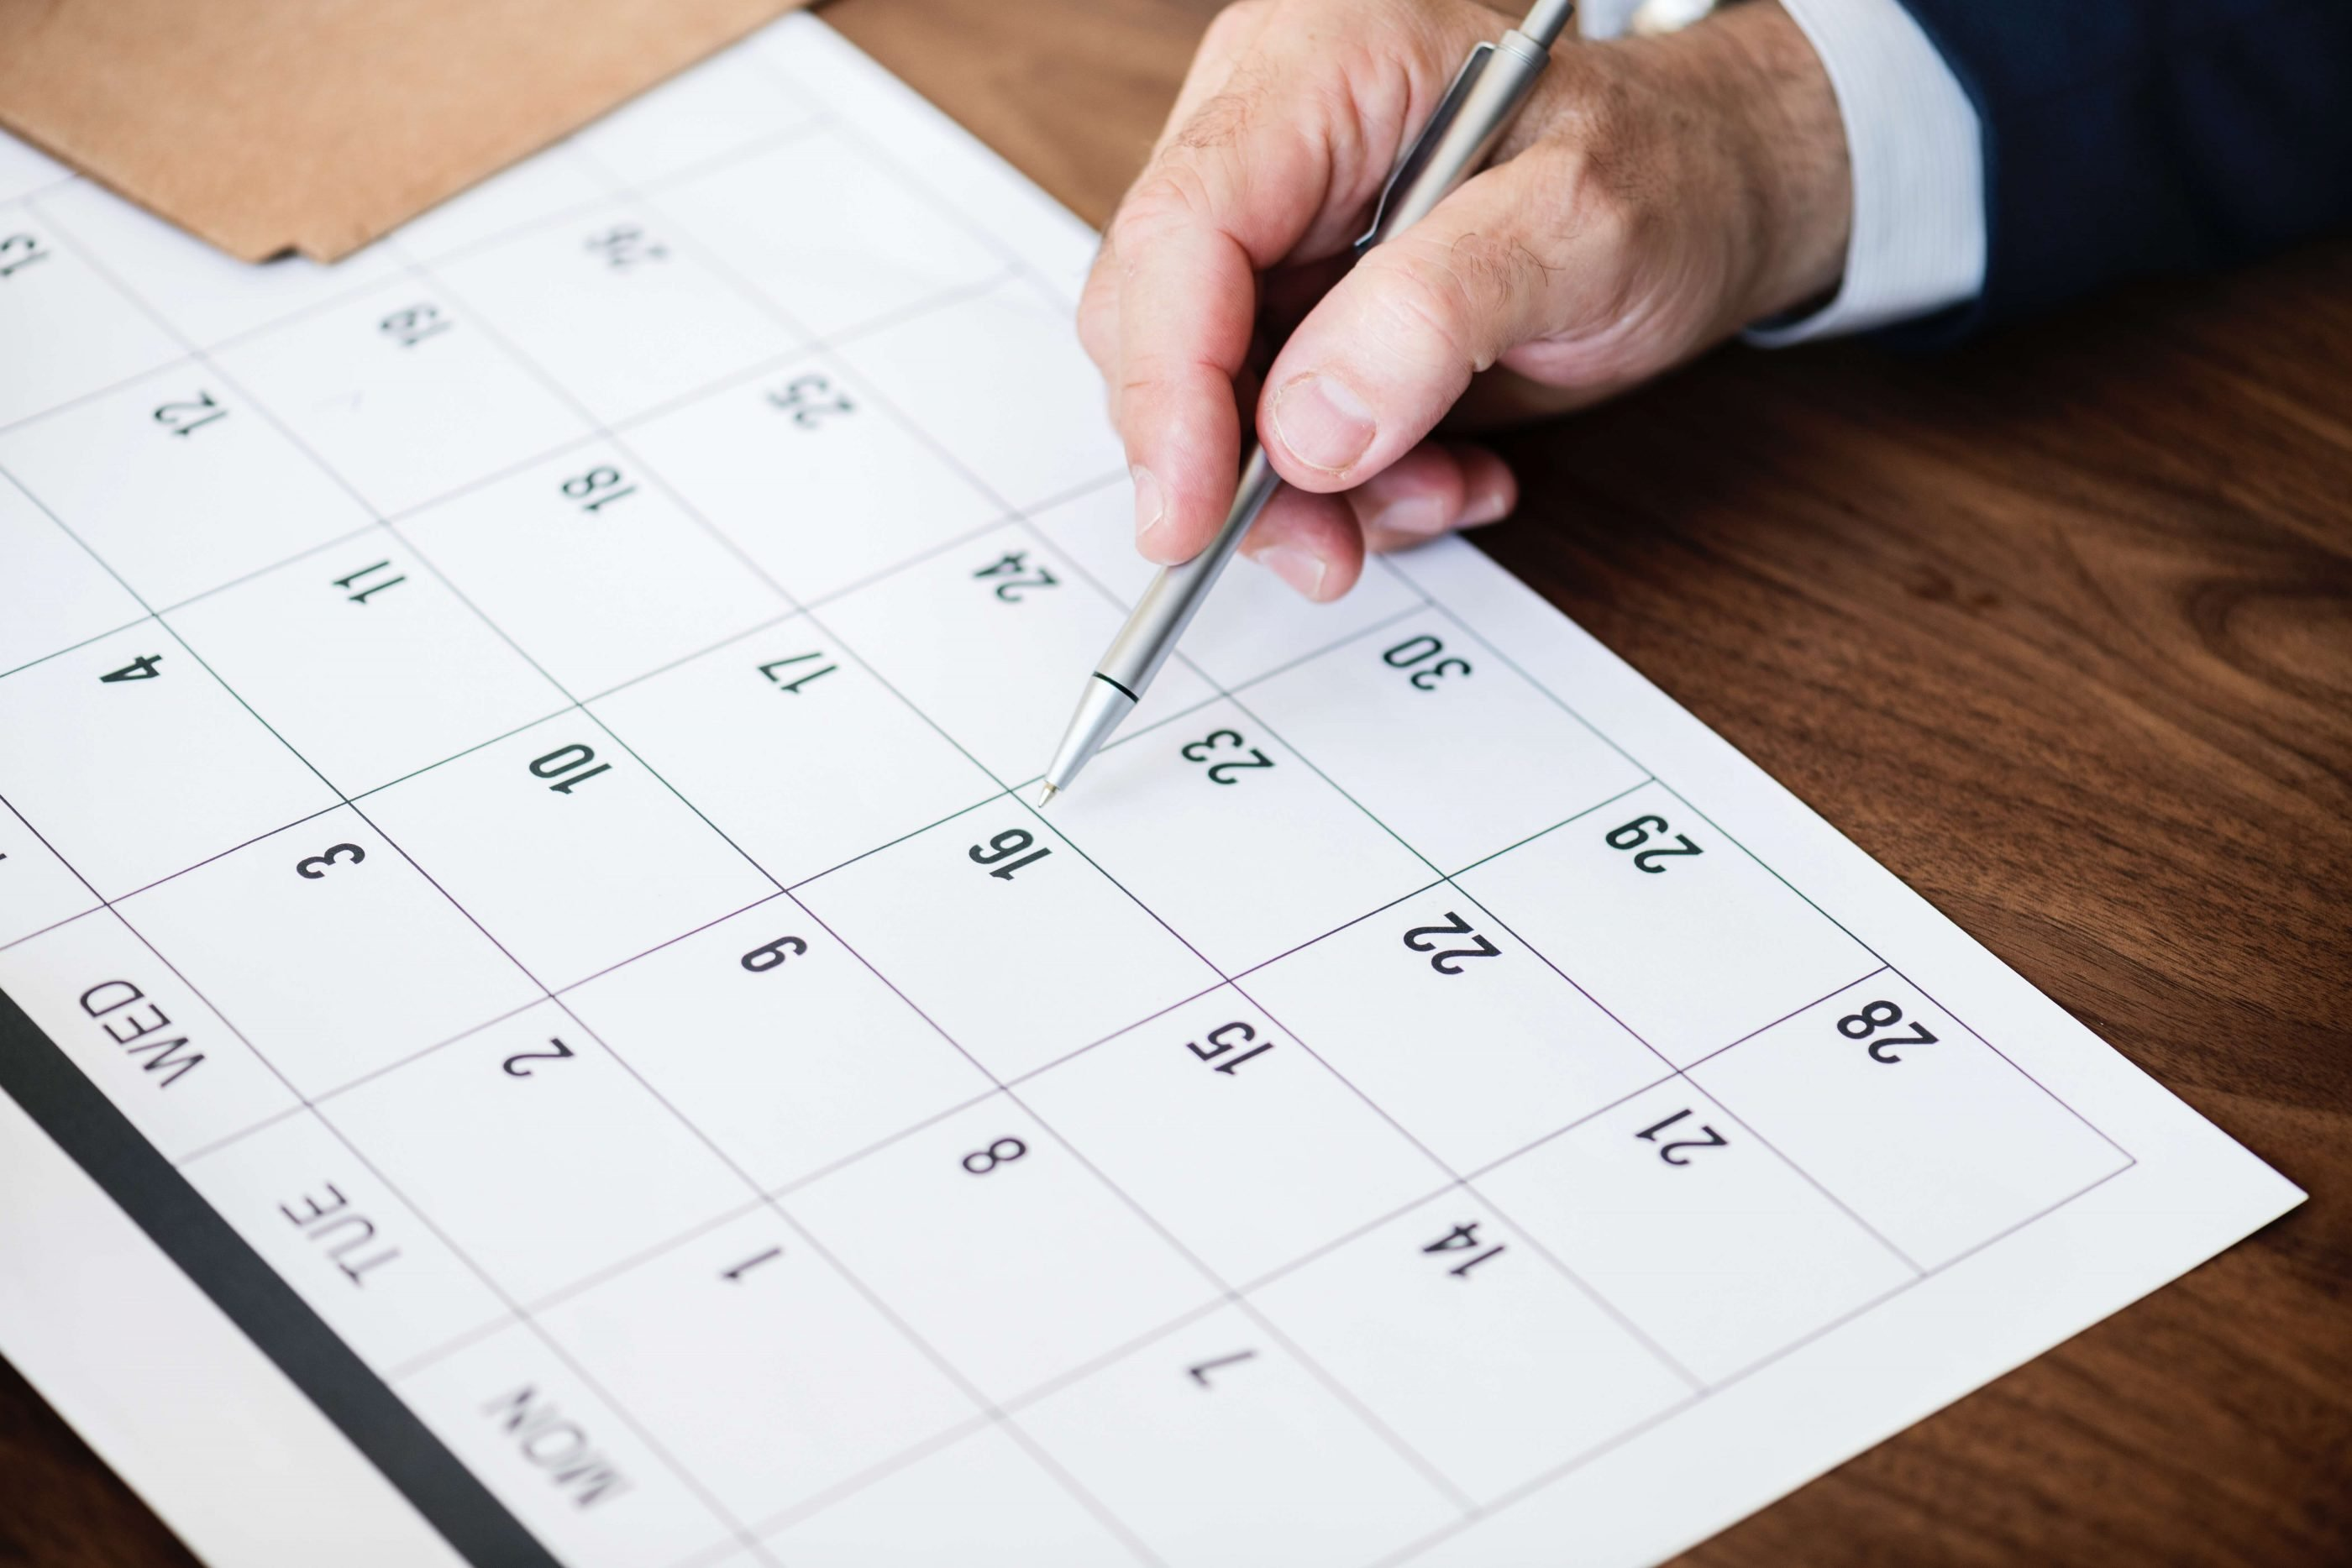 Project scheduling tip: Don't procrastinate